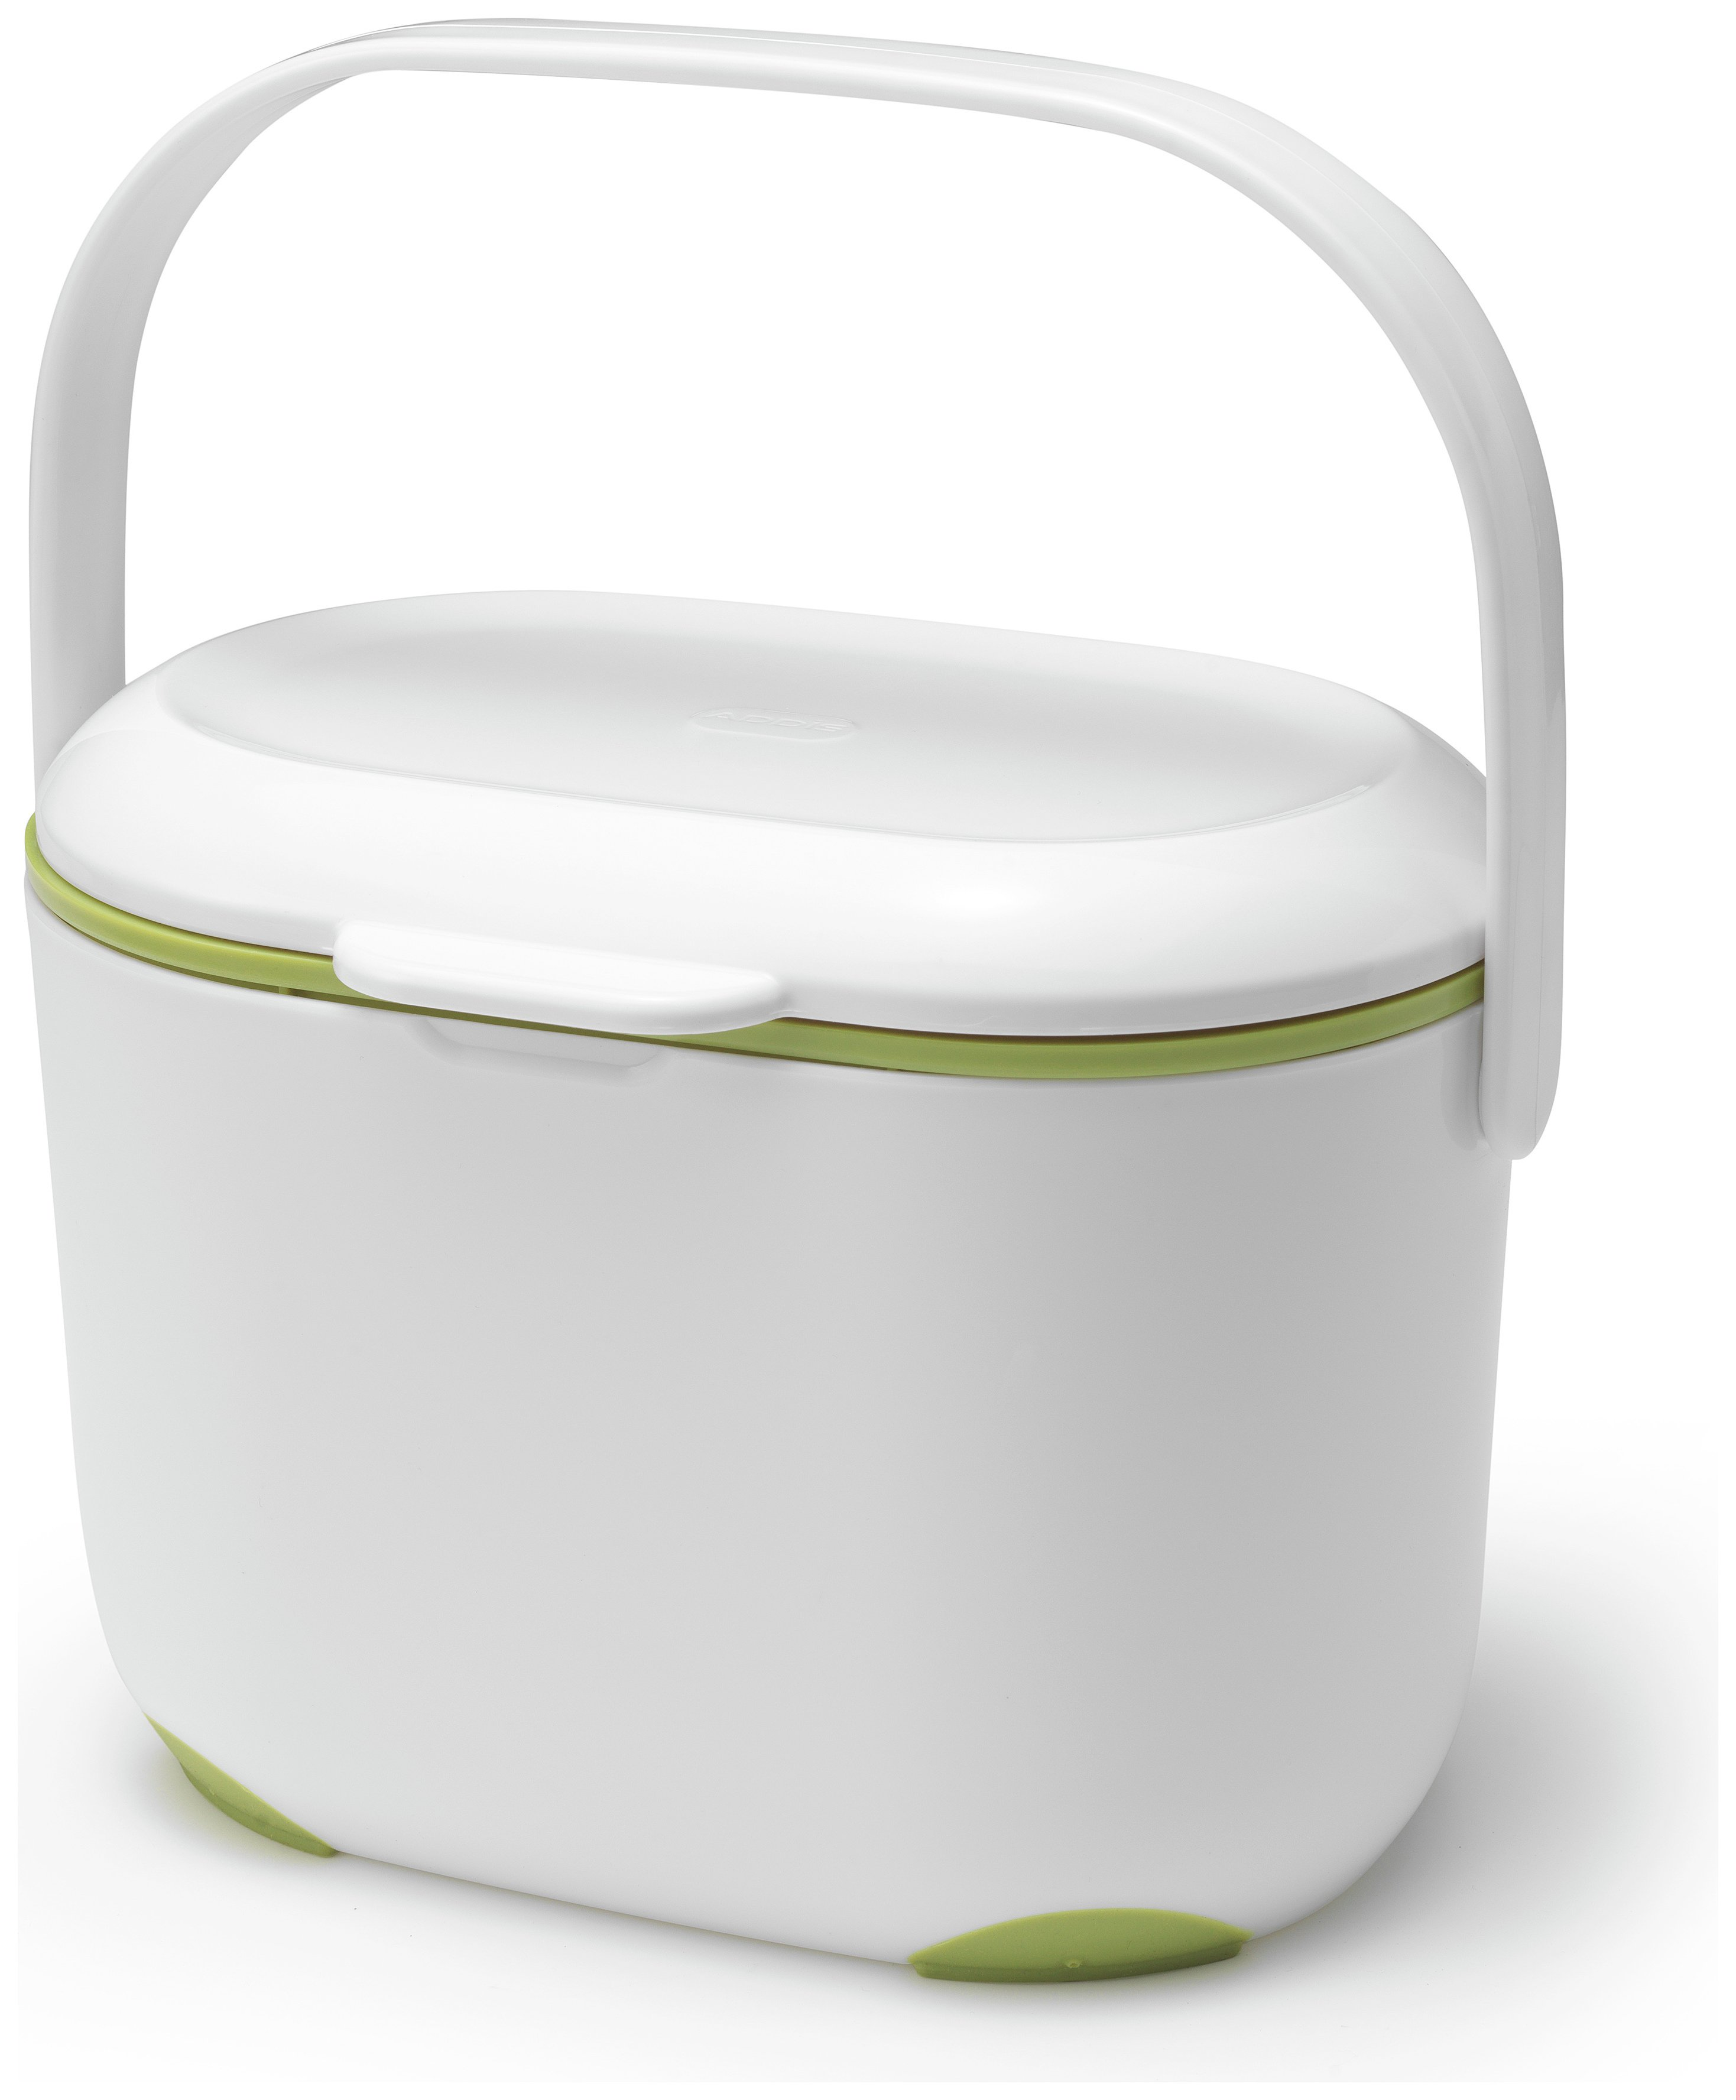 Image of Addis - Compost Caddy - Green and White